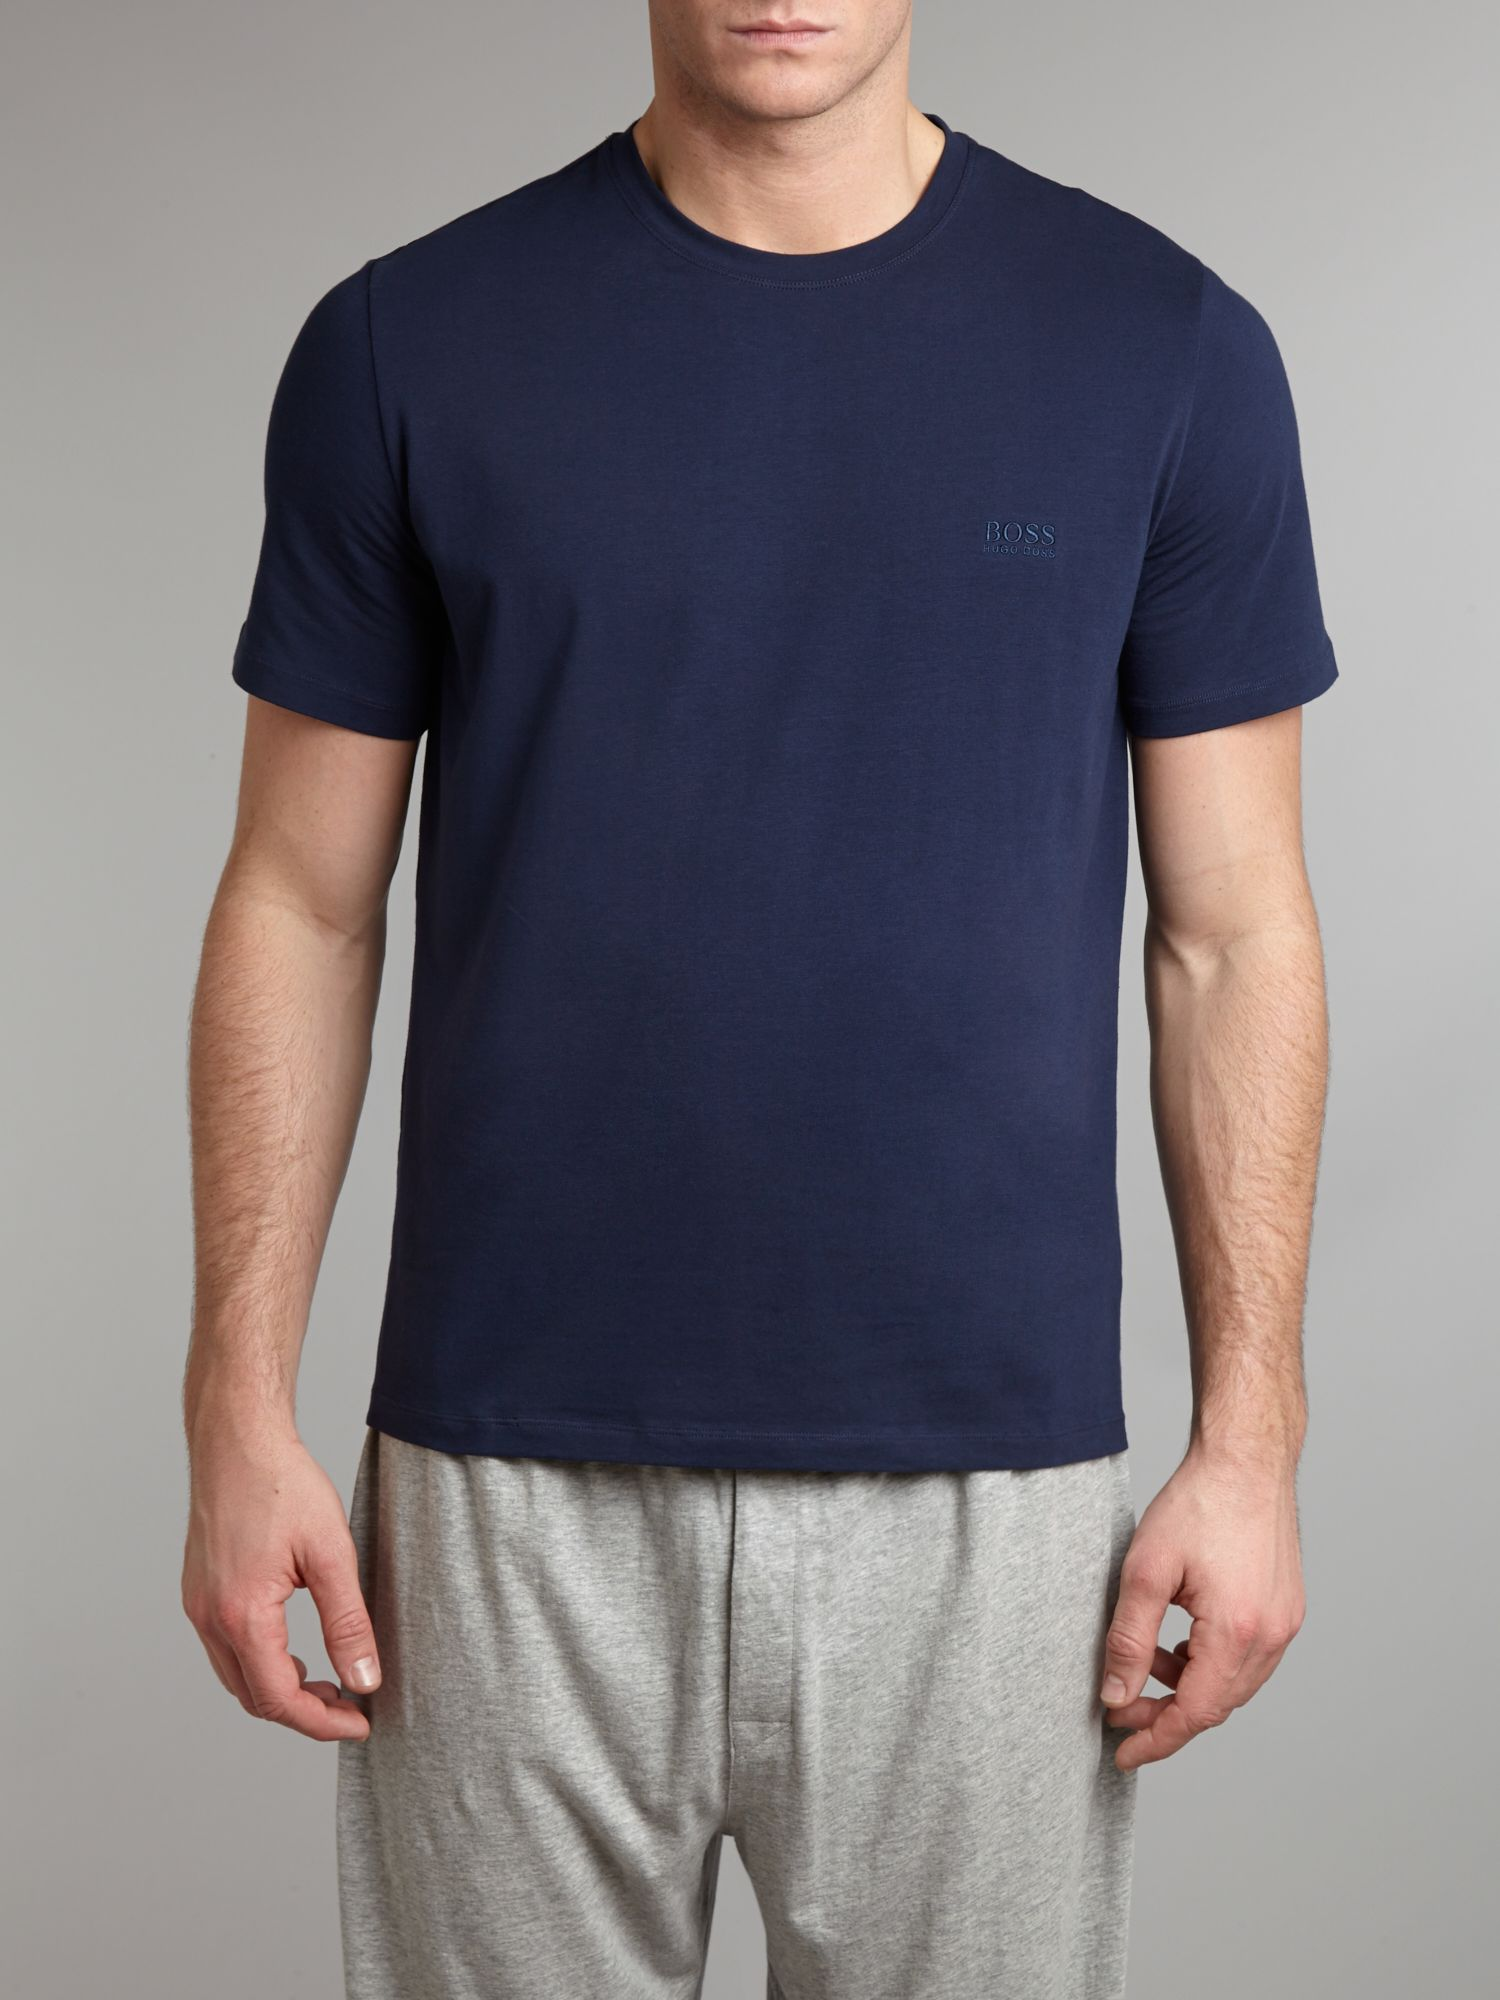 Short sleeved crew neck tshirt